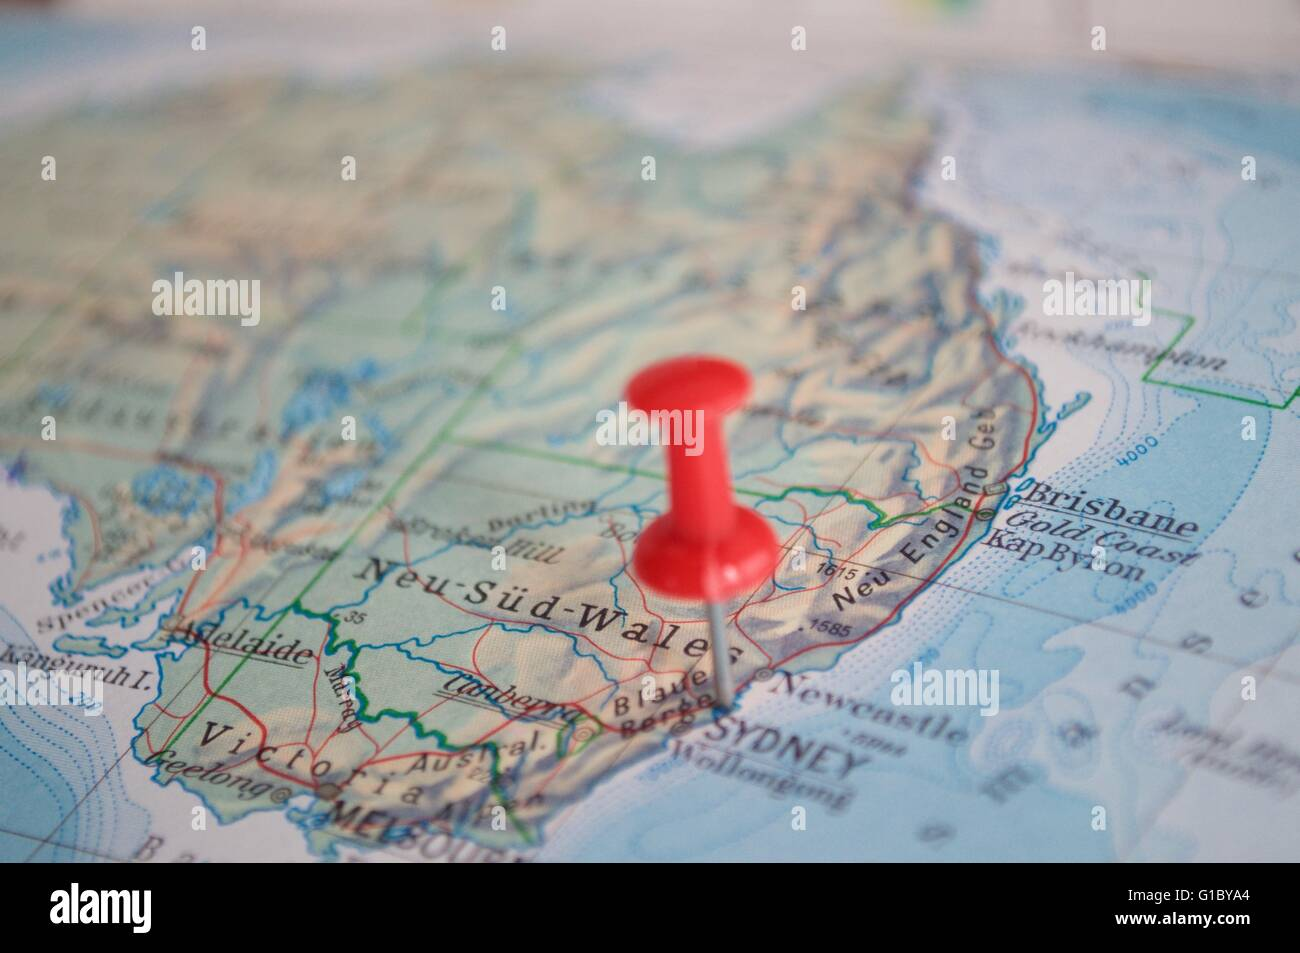 Sydney marked with pin on map with selective focus stock photo sydney marked with pin on map with selective focus gumiabroncs Image collections